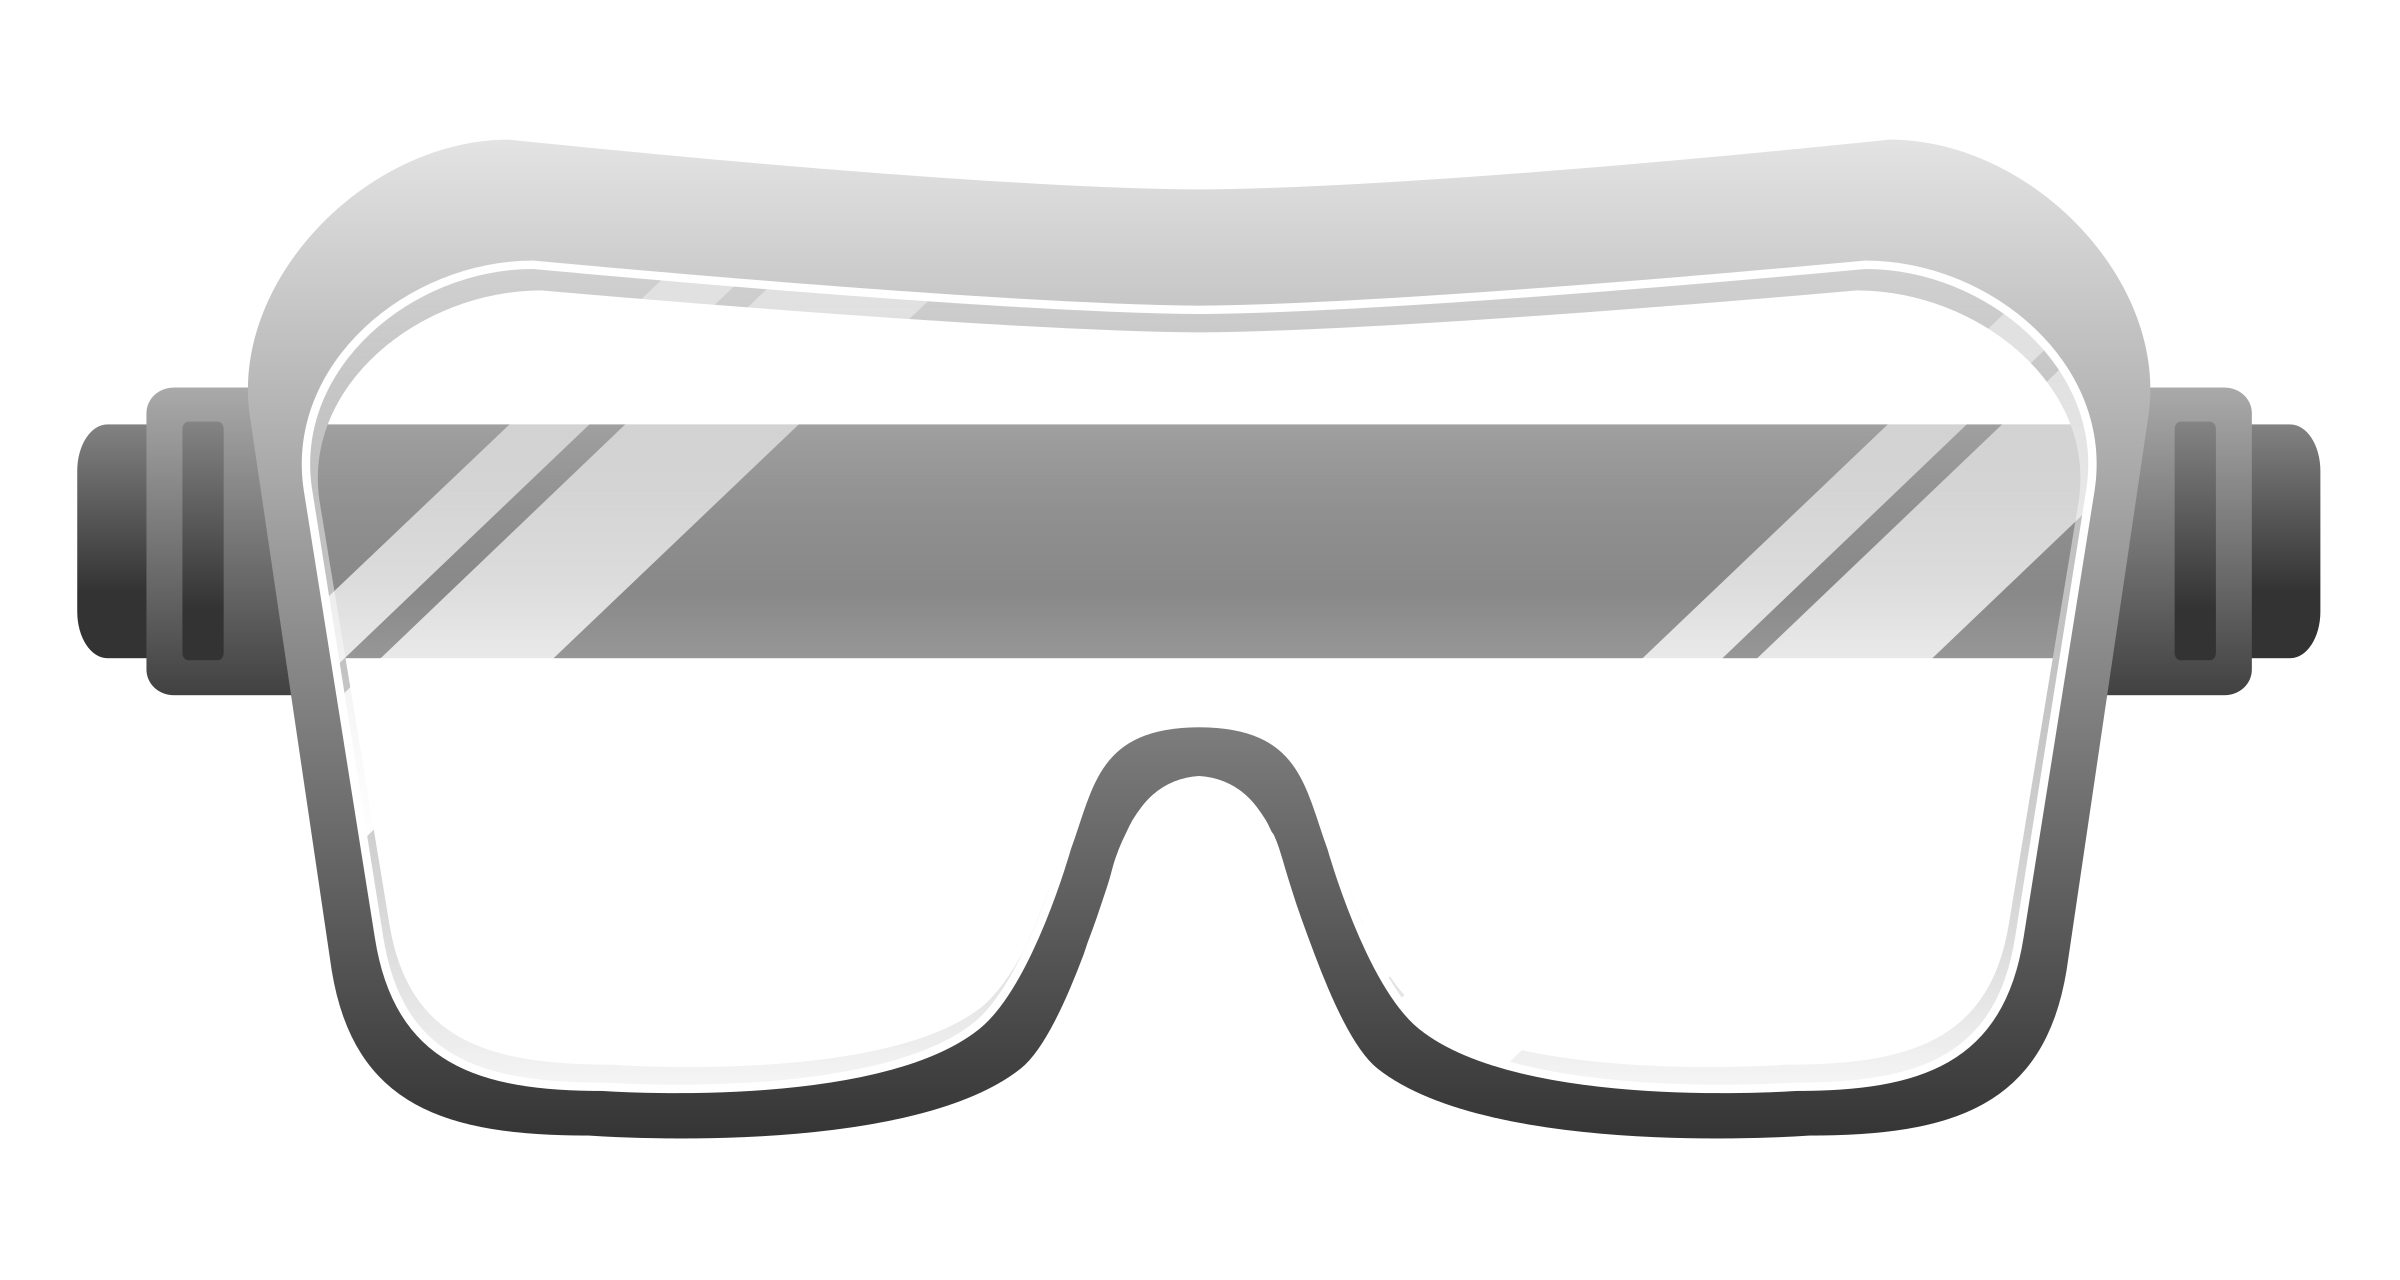 Science clipart safety goggles Goggles ClipartFan and Safety Goggles